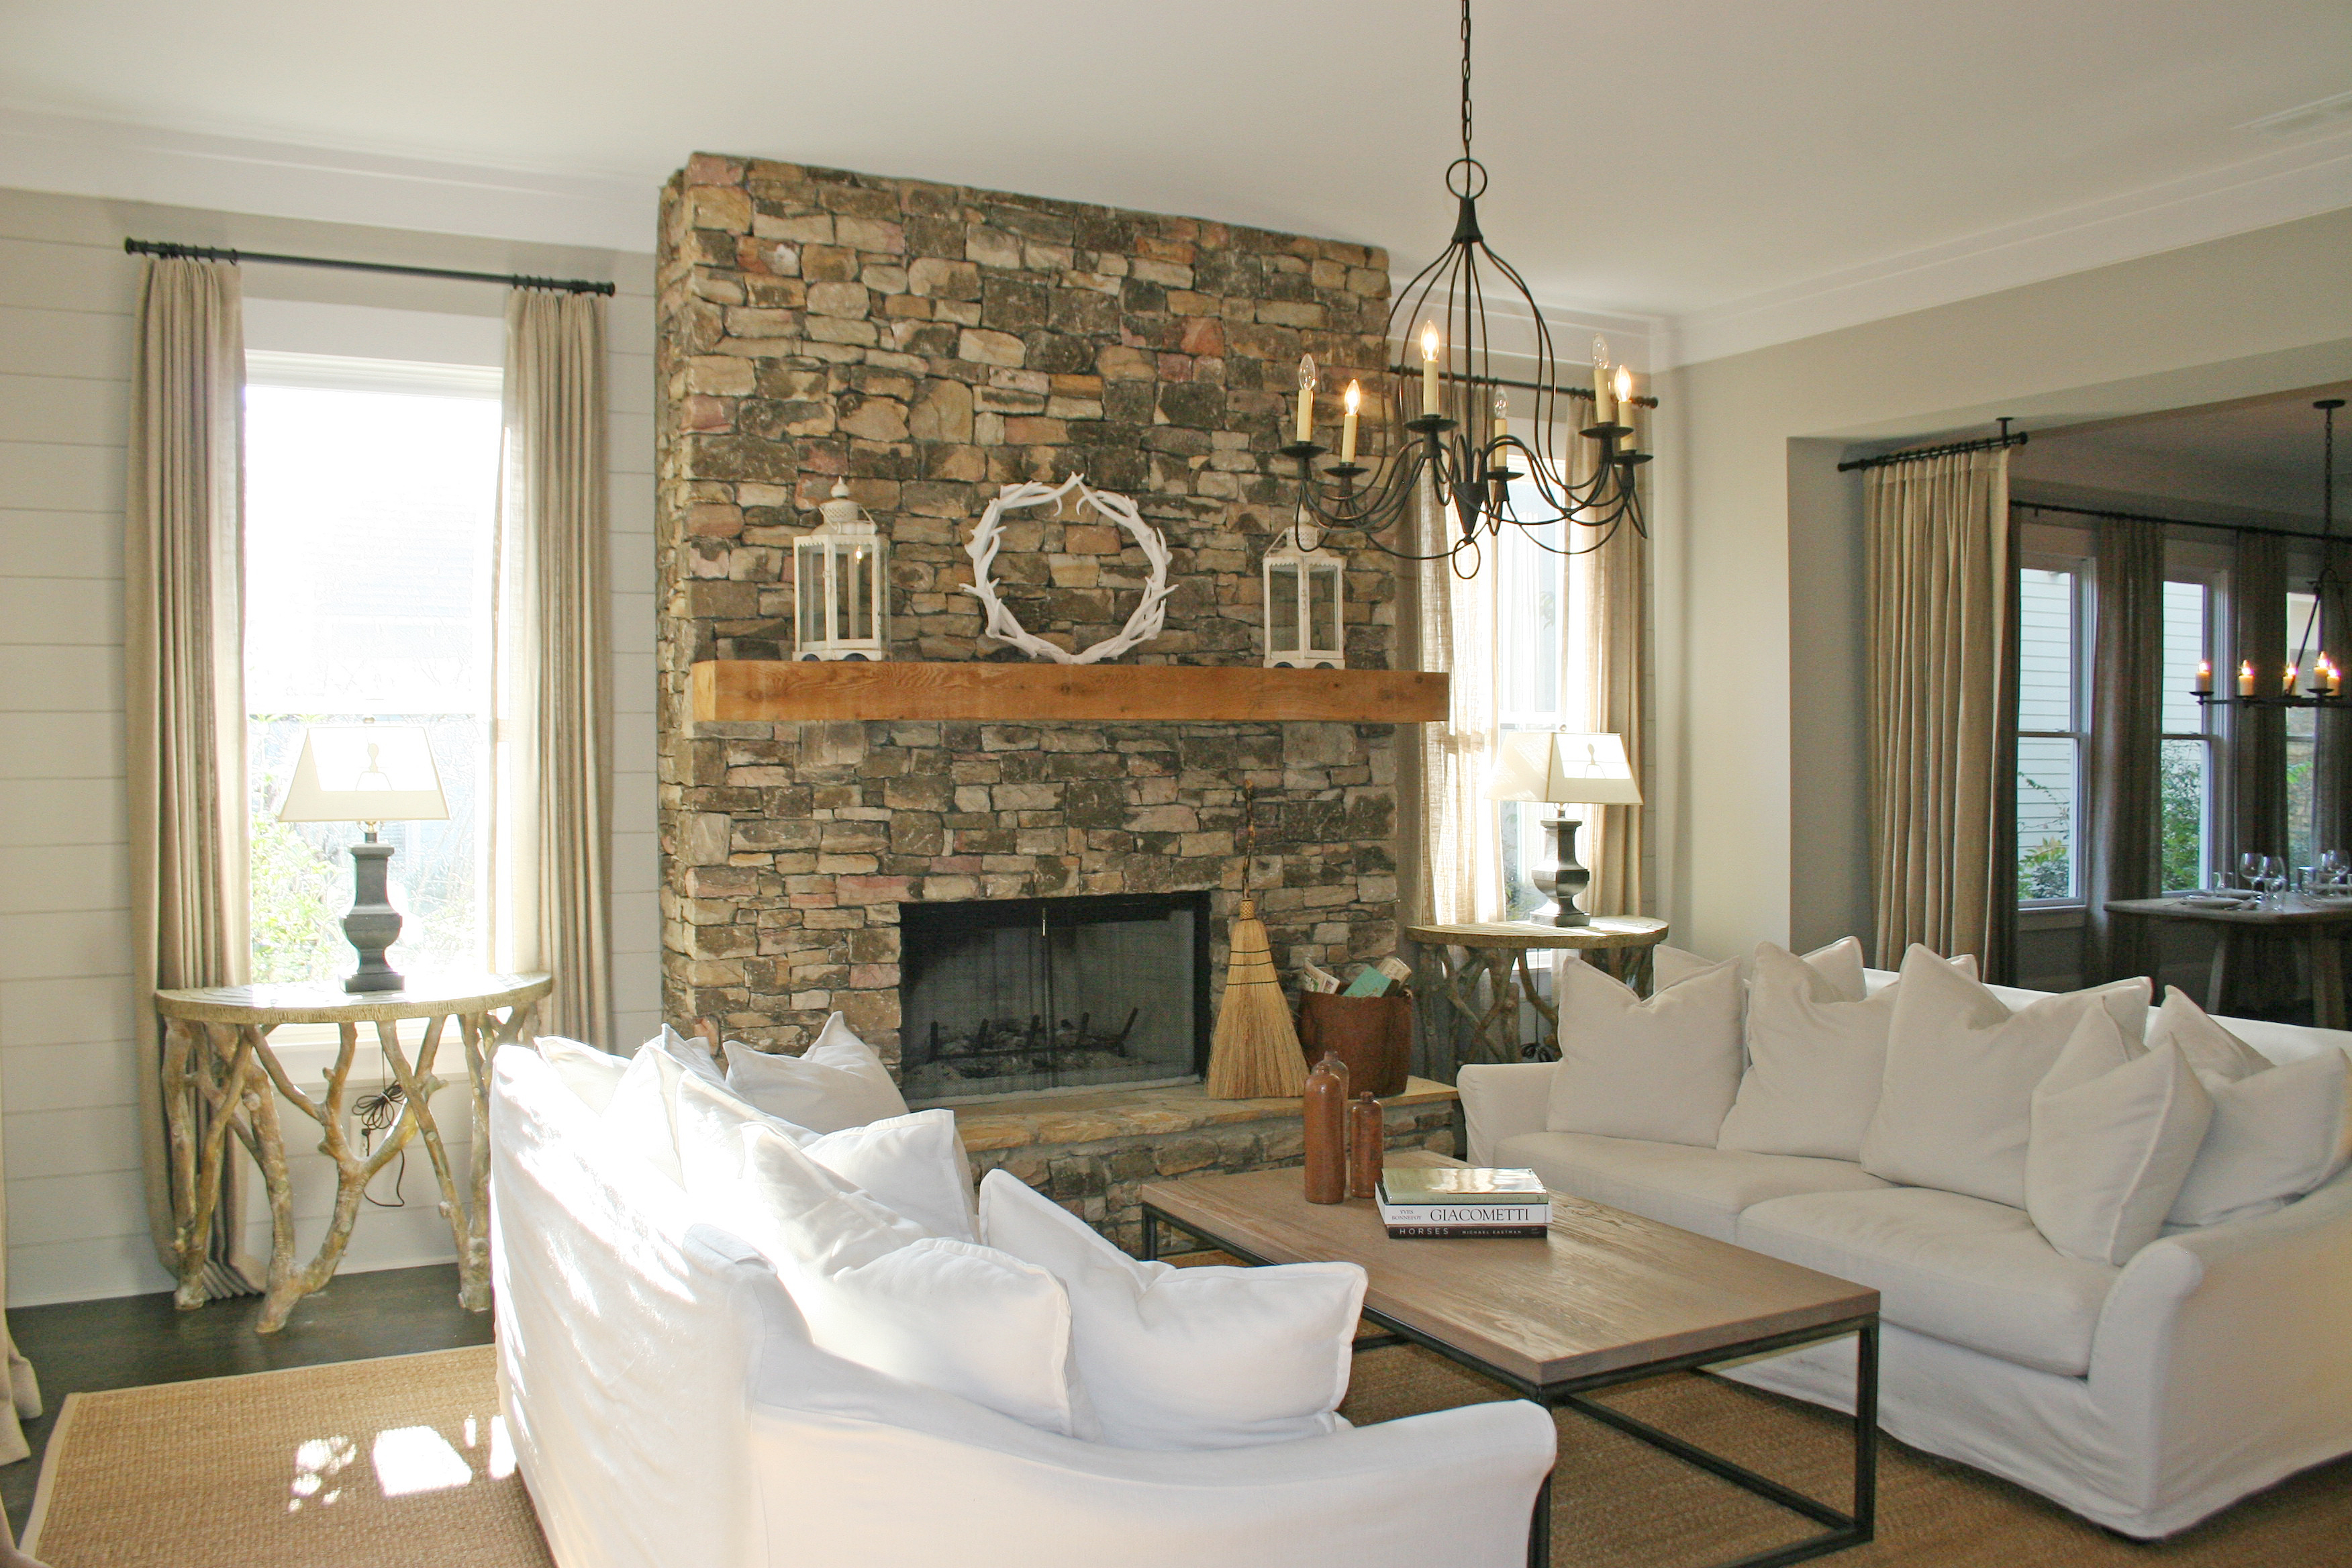 decoration-stunning-living-rooms-with-stacked-stone-fireplace-rilane-stone-fireplace-for-your-home-i